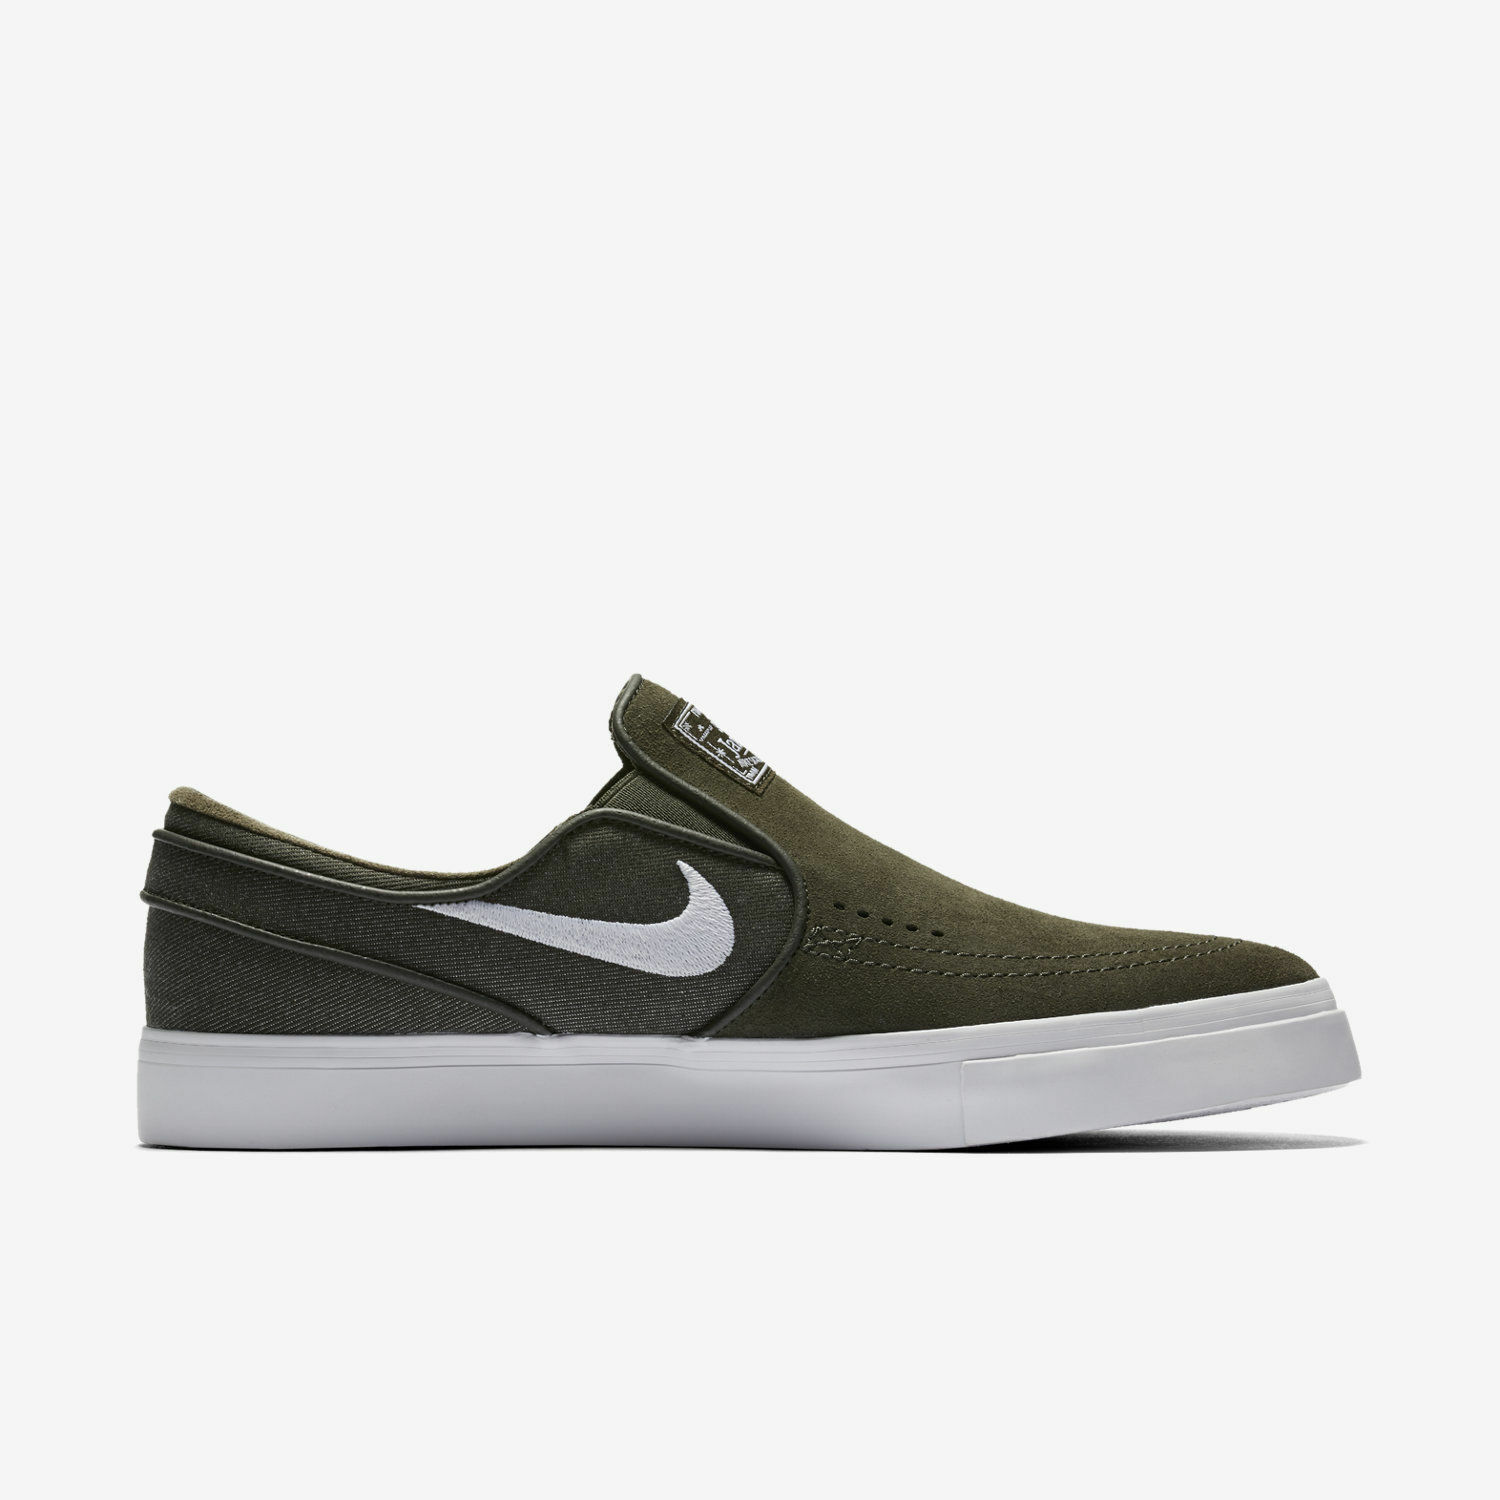 NIKE Zoom Stefan Janoski Slip homme chaussures Style 833564-311 Multiple Tailles